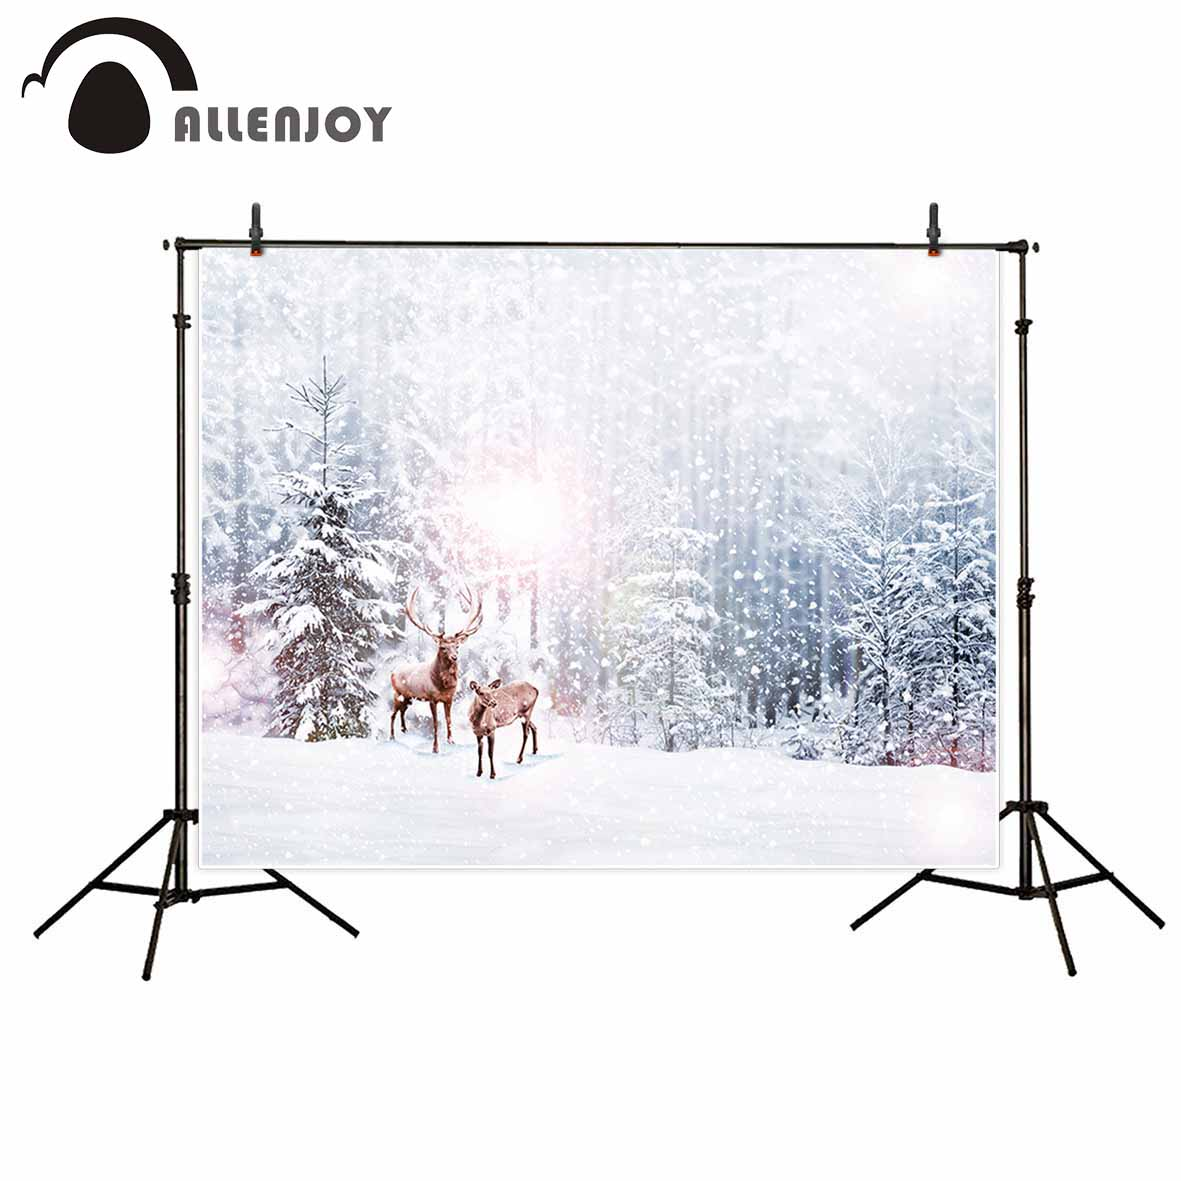 Allenjoy Winter background forest pine elk snow photography backdrops christmas decorations new backdrops photo studio 2017 size 32 43 fashion black lace up high heels women boots ankle ladies shoes woman spring autumn chaussure femme 33 34 white